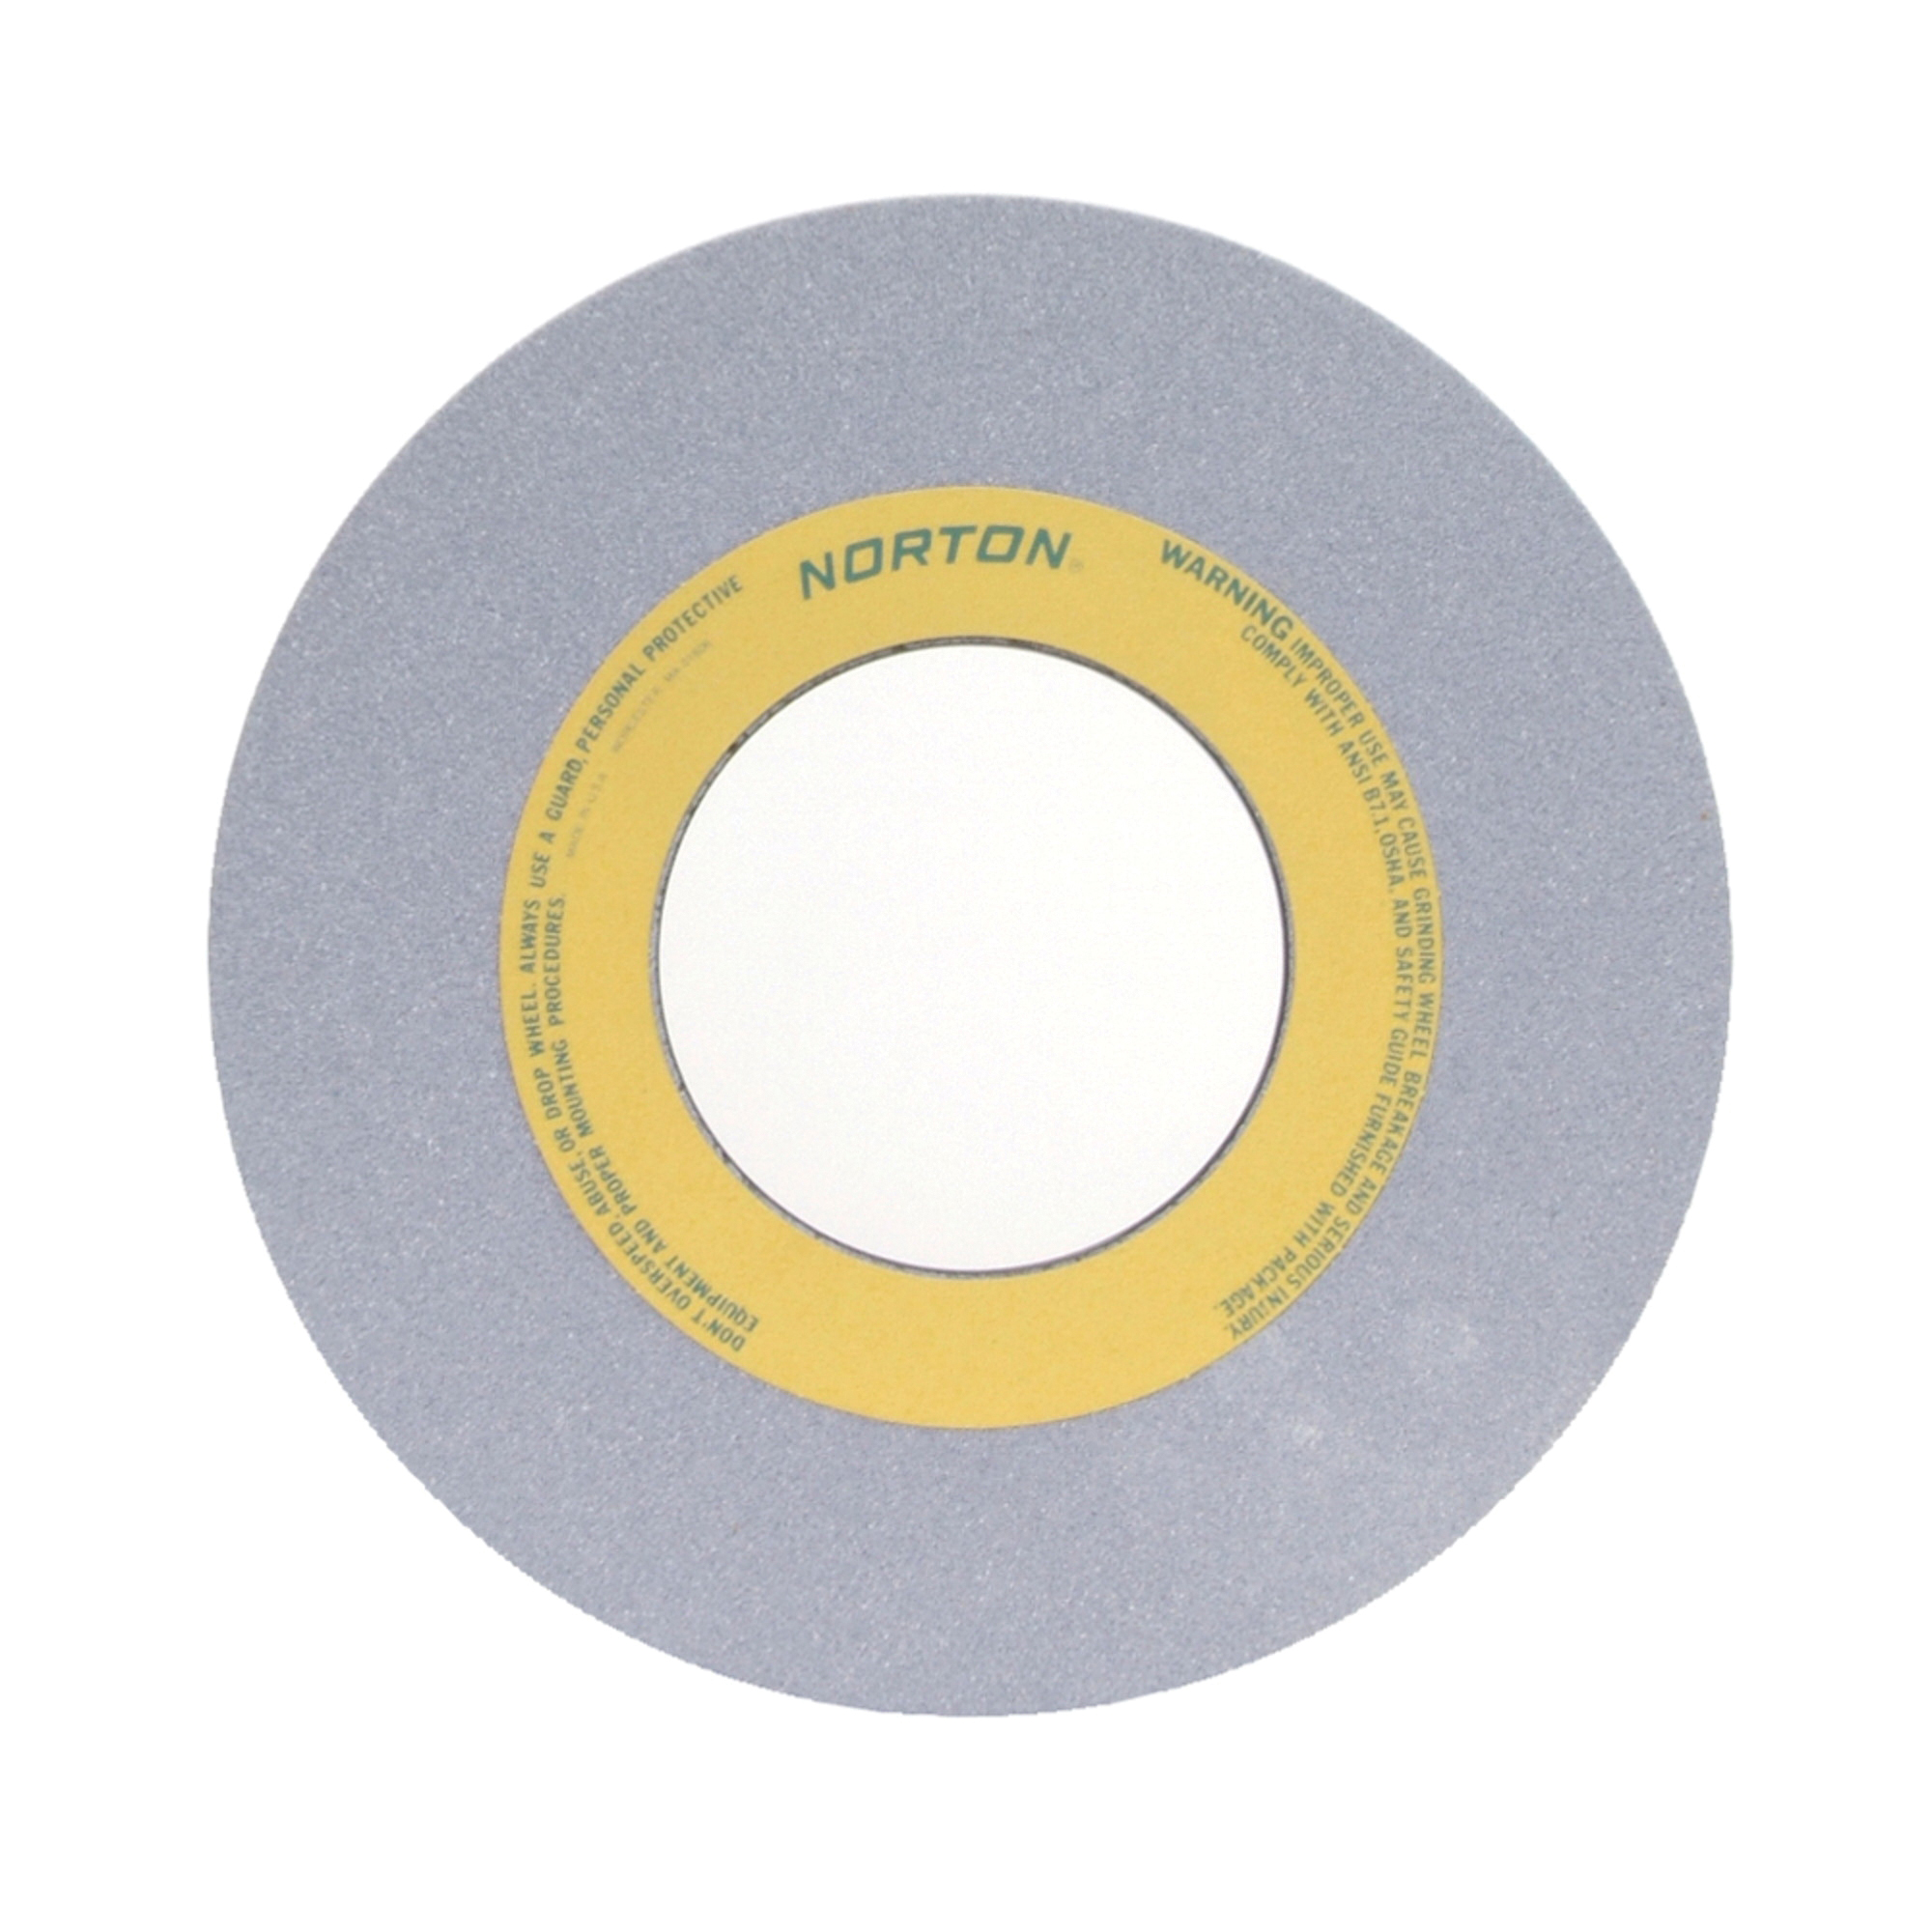 Norton® 66253262111 32A Straight Toolroom Wheel, 12 in Dia x 1/2 in THK, 5 in Center Hole, 80 Grit, Aluminum Oxide Abrasive